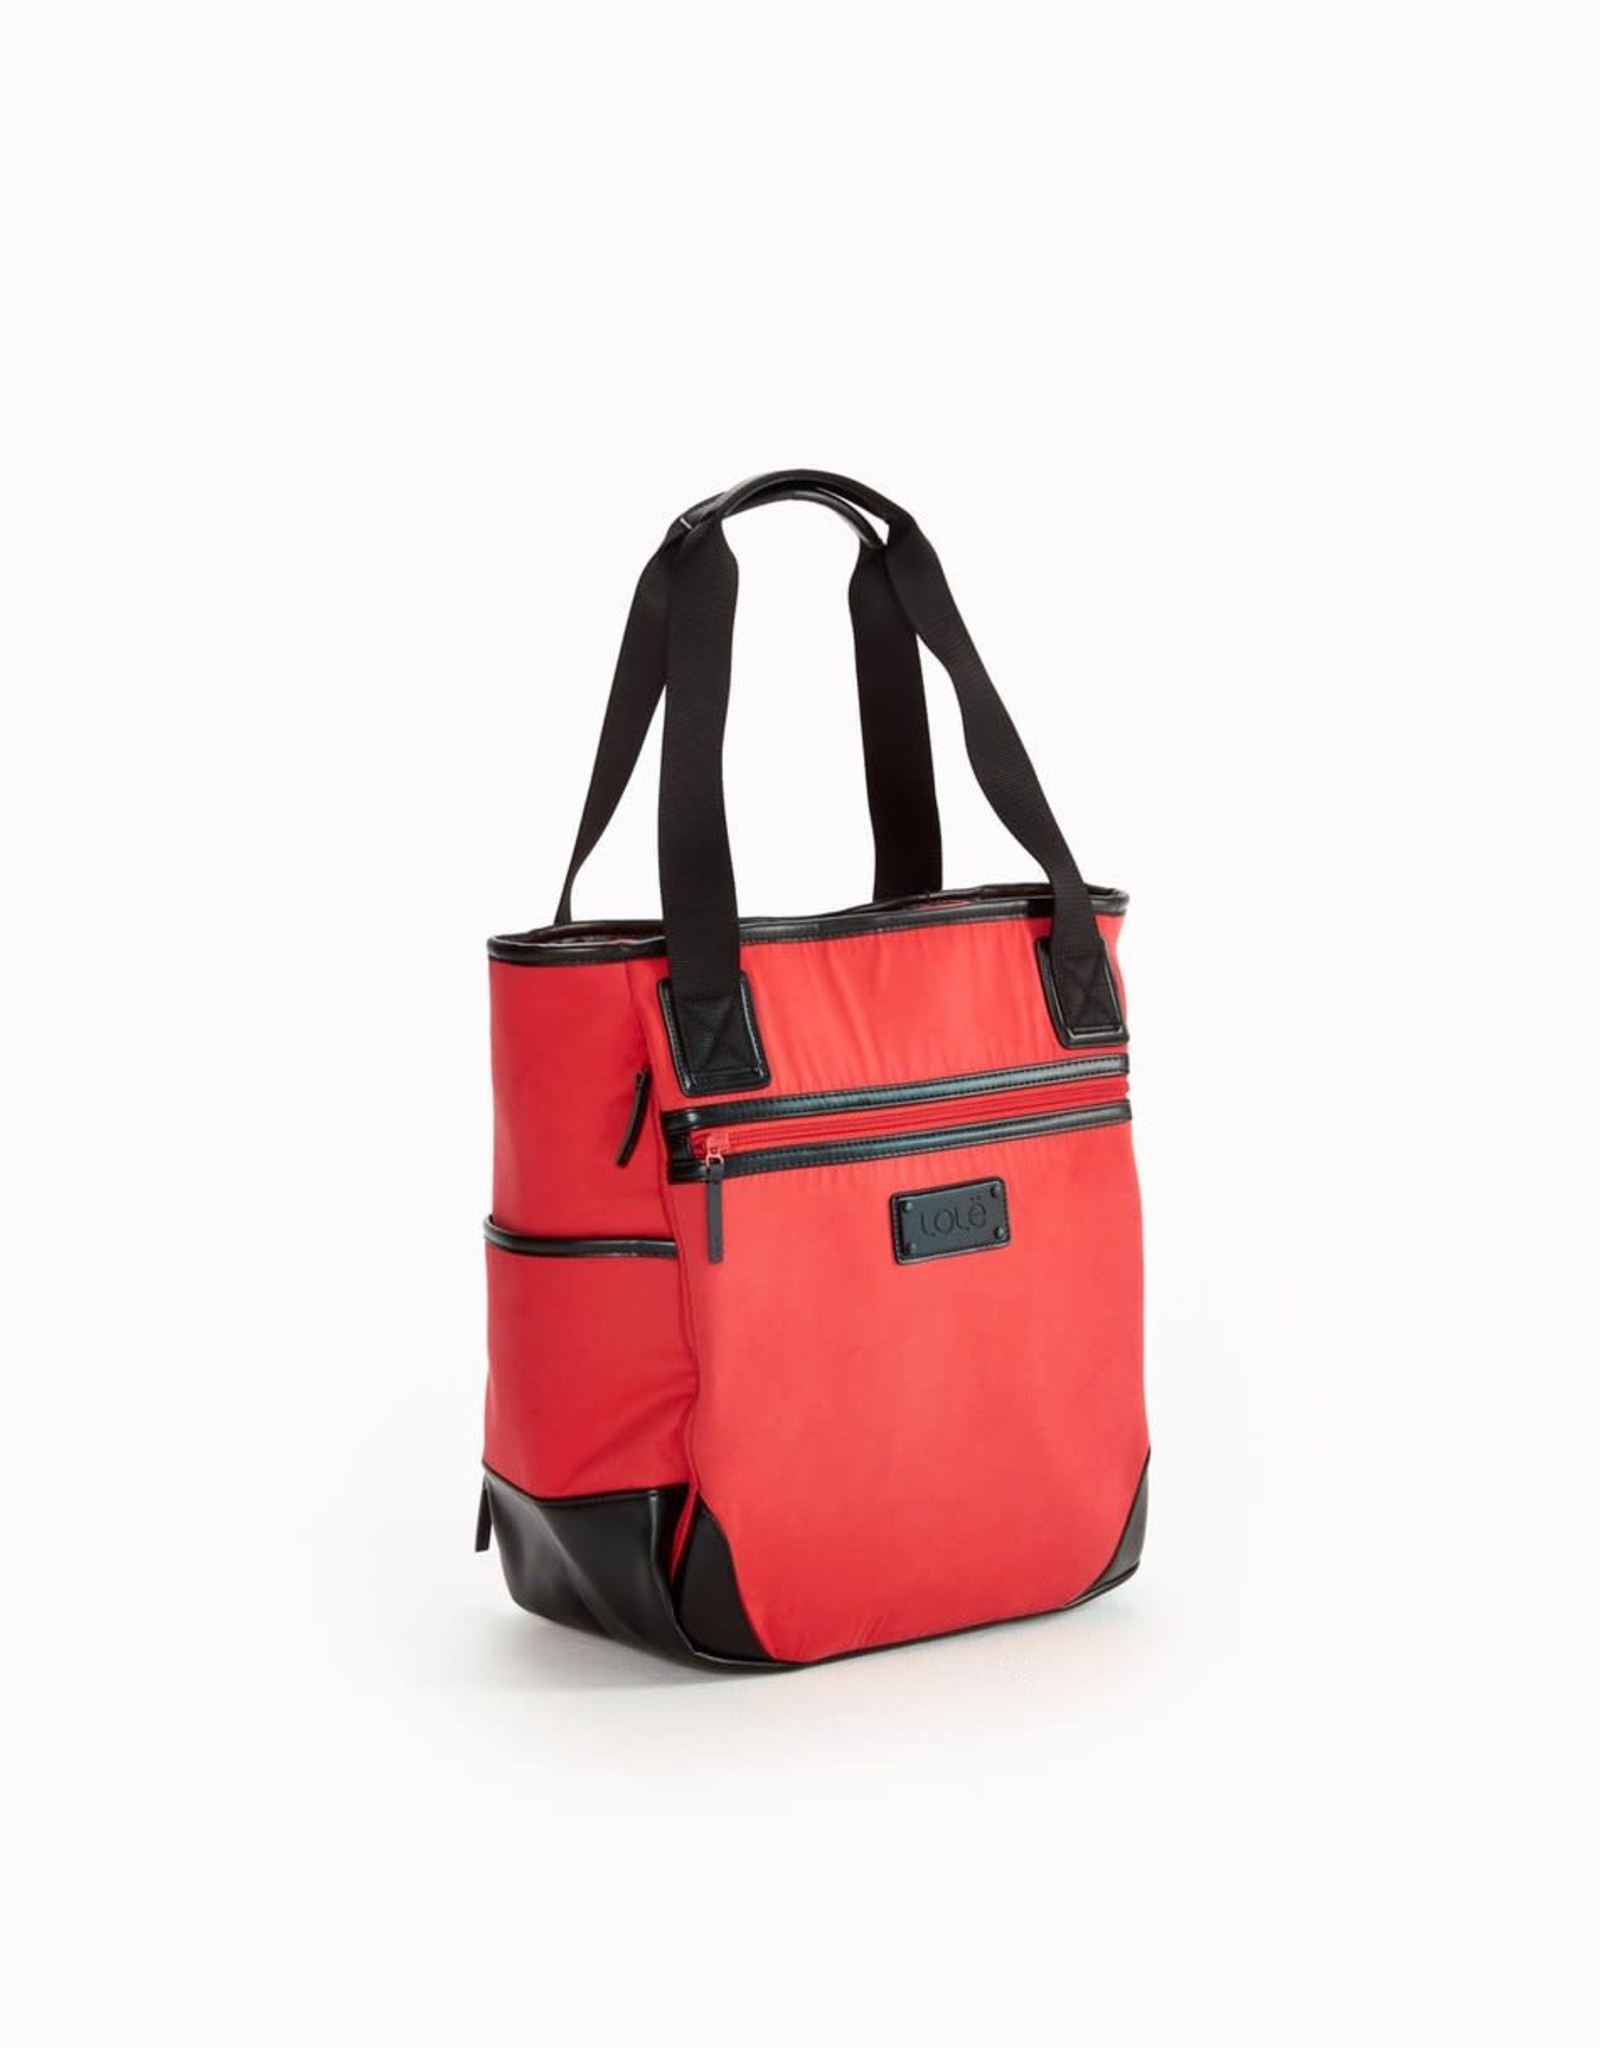 Lole Flame red waxed lily bag